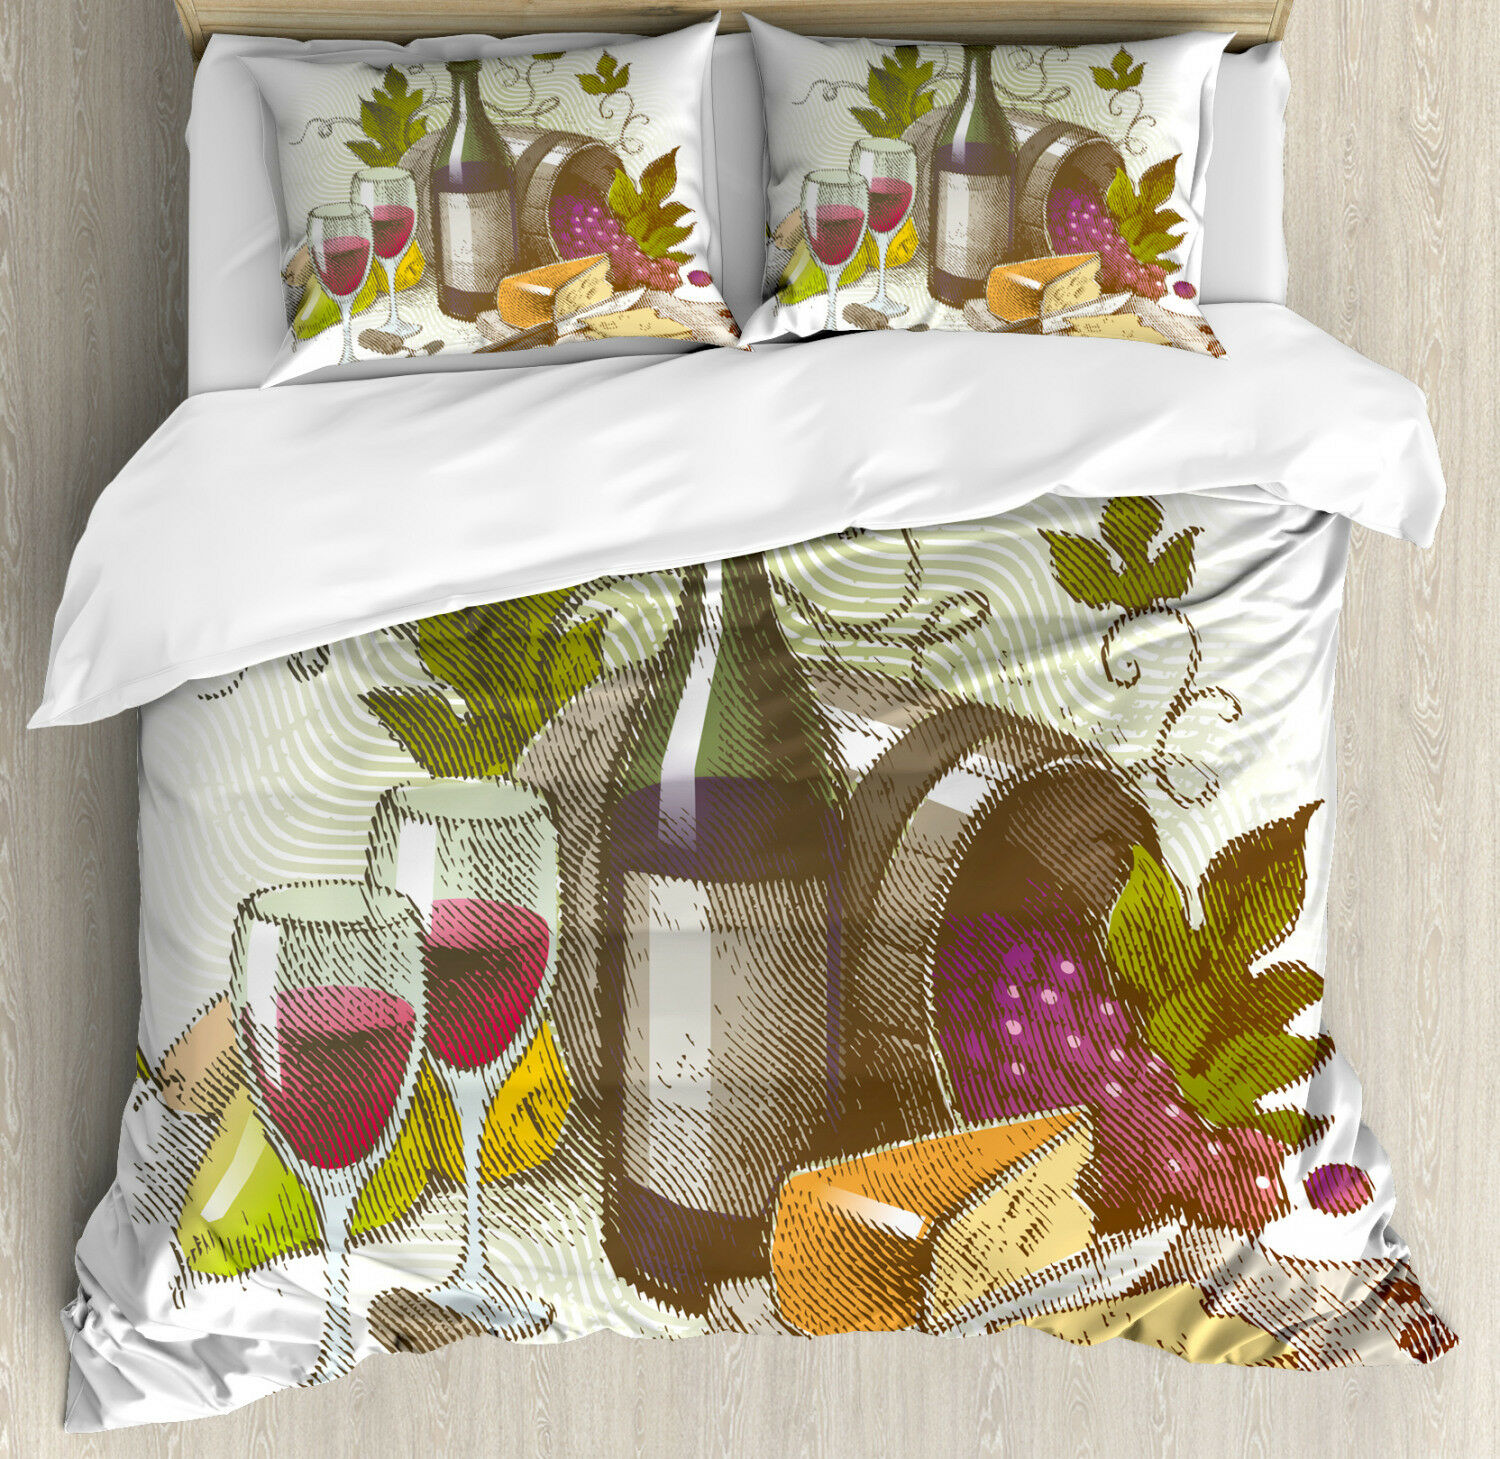 Wine Duvet Cover Set with Pillow Shams Vintage Wine and Cheese Print